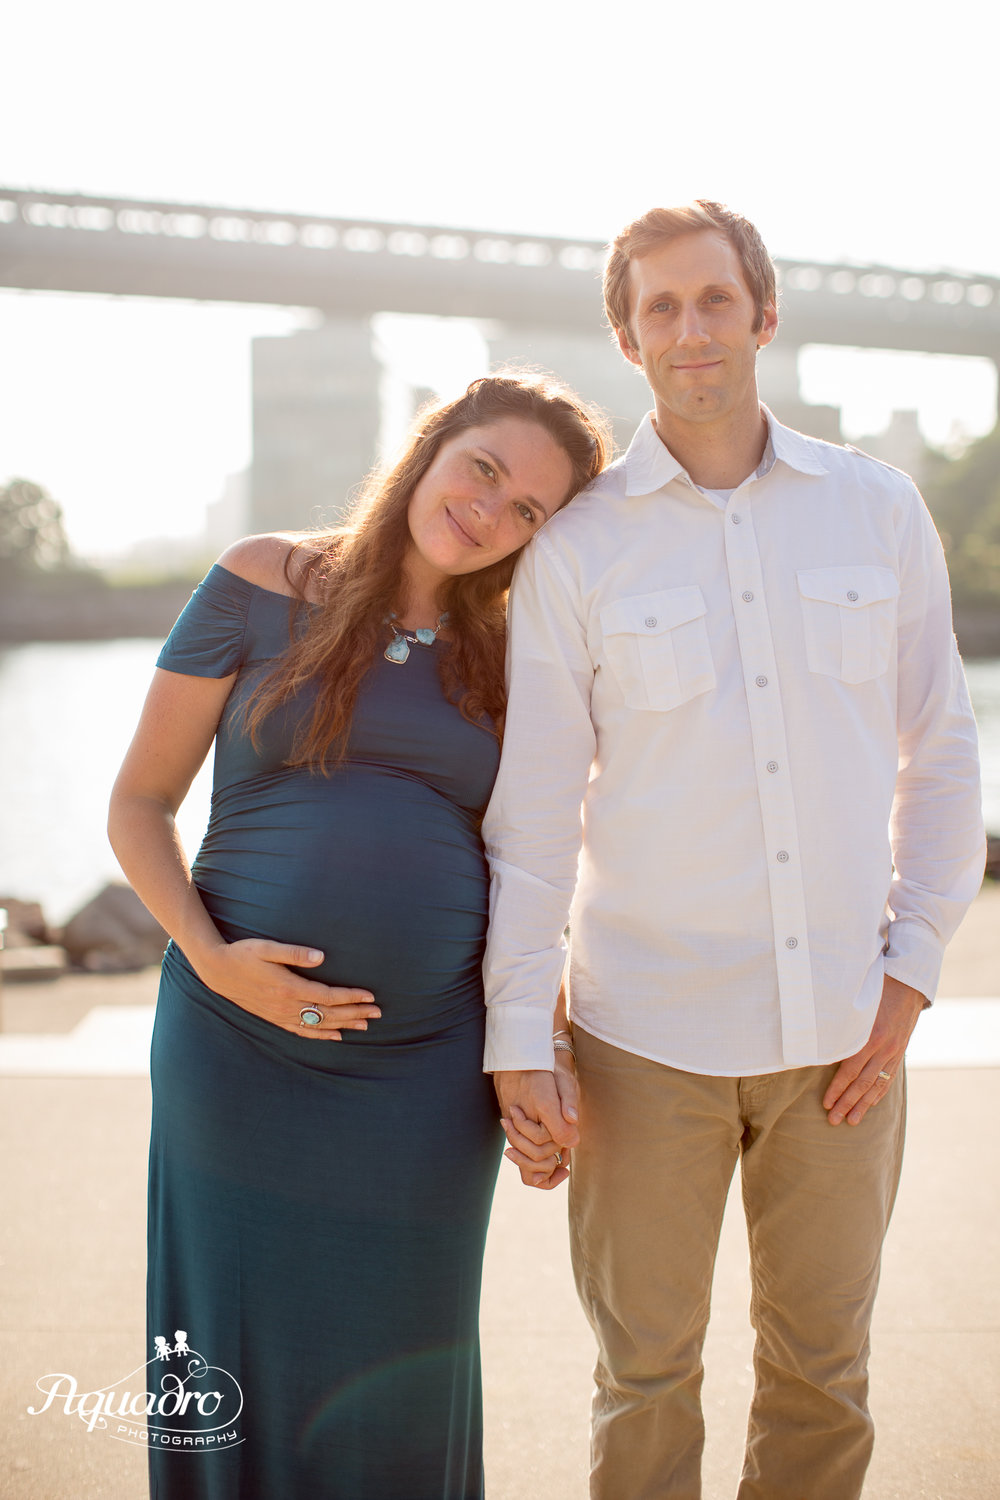 Parents To Be in Brooklyn